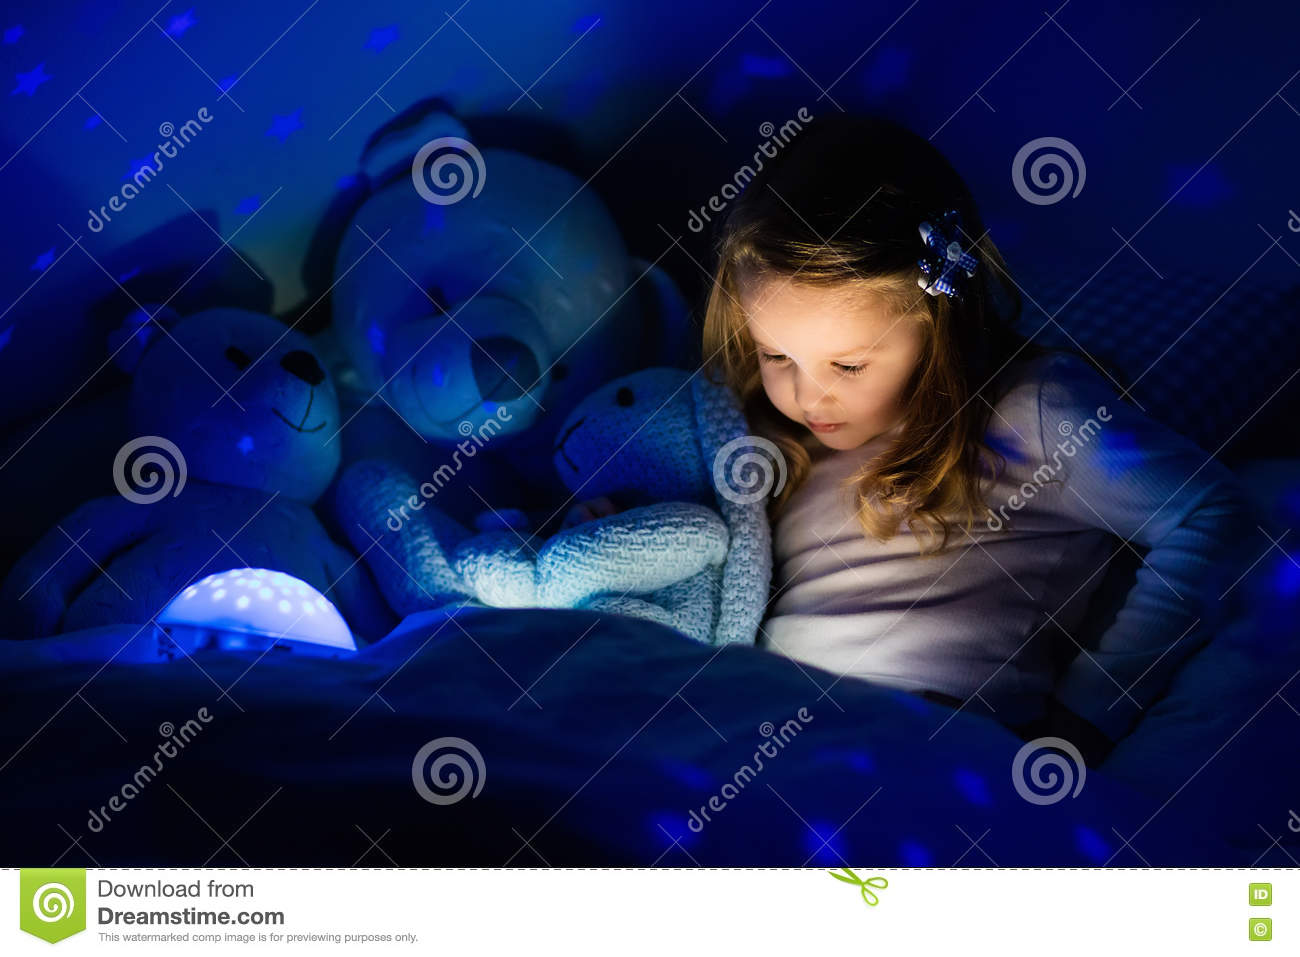 Little Girl In Bed With Night Lamp Stock Image - Image of book ... for Little Girl With Lamp  56bof